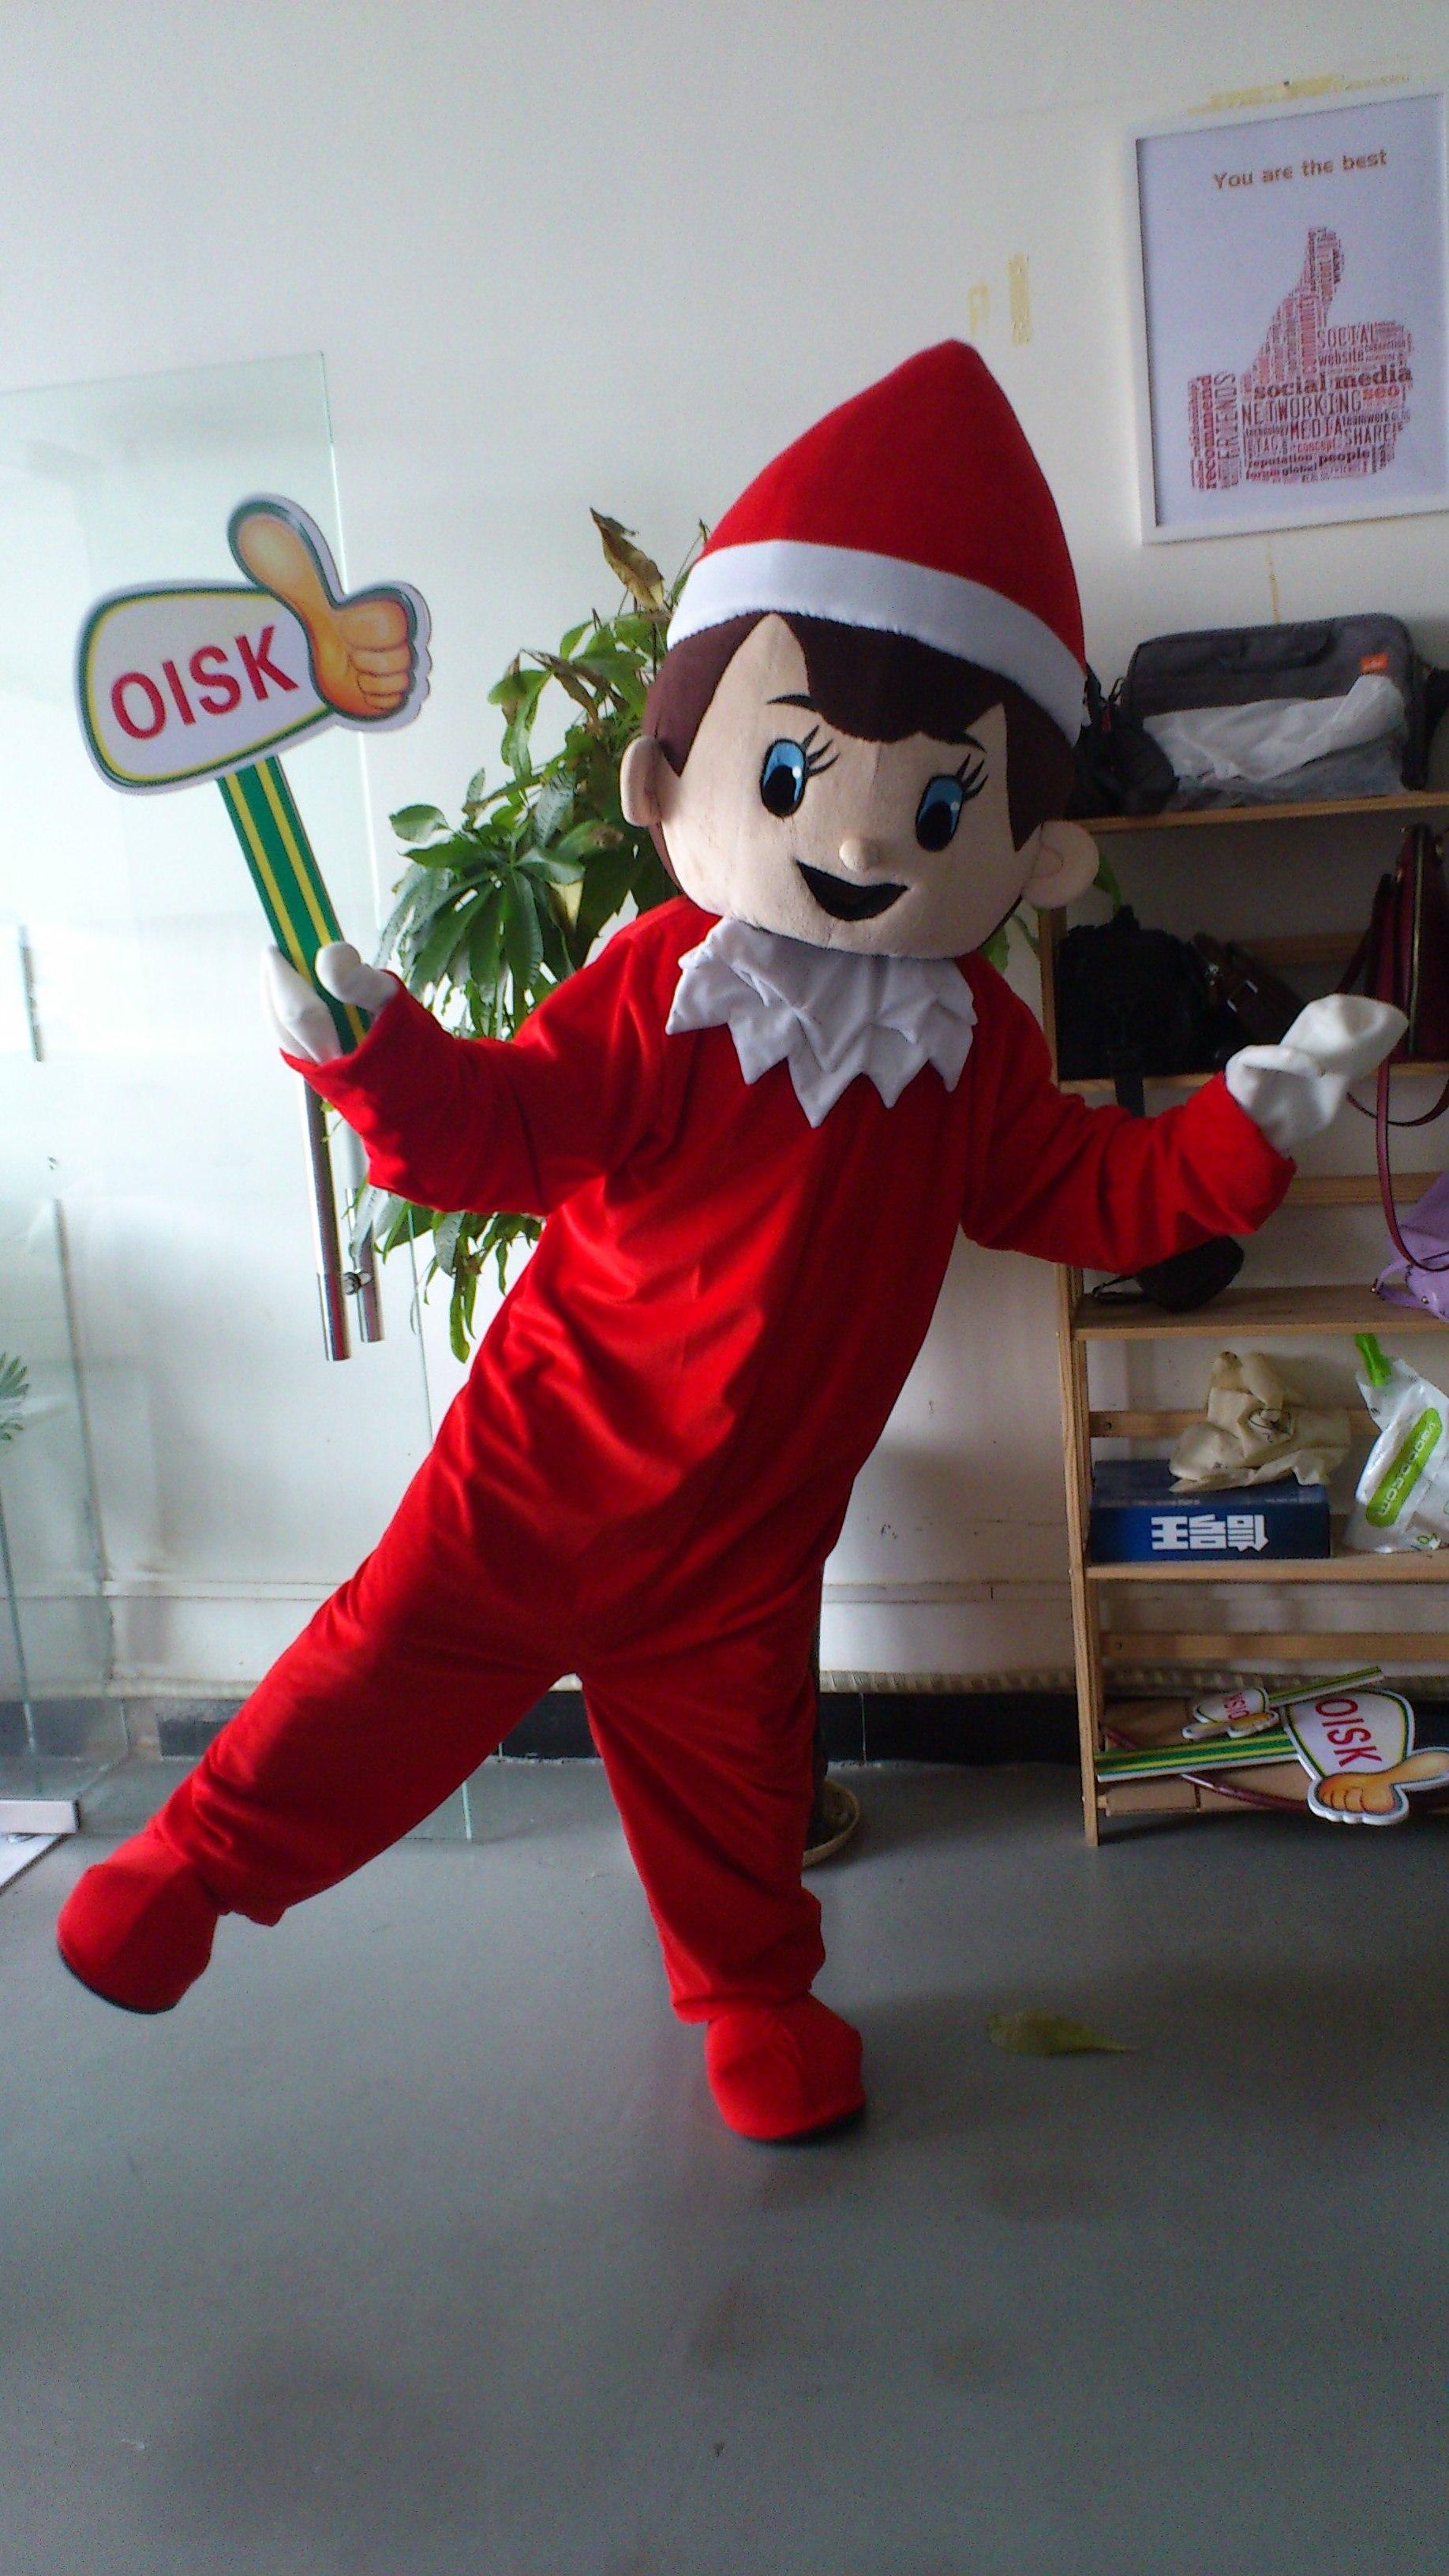 High Quality Christmas Elf Mascot Costume Adult Size Xmas Christmas Character Costume Fancy Dress Moulin Rouge Costumes Costume Rentals From Woworker ... & High Quality Christmas Elf Mascot Costume Adult Size Xmas Christmas ...